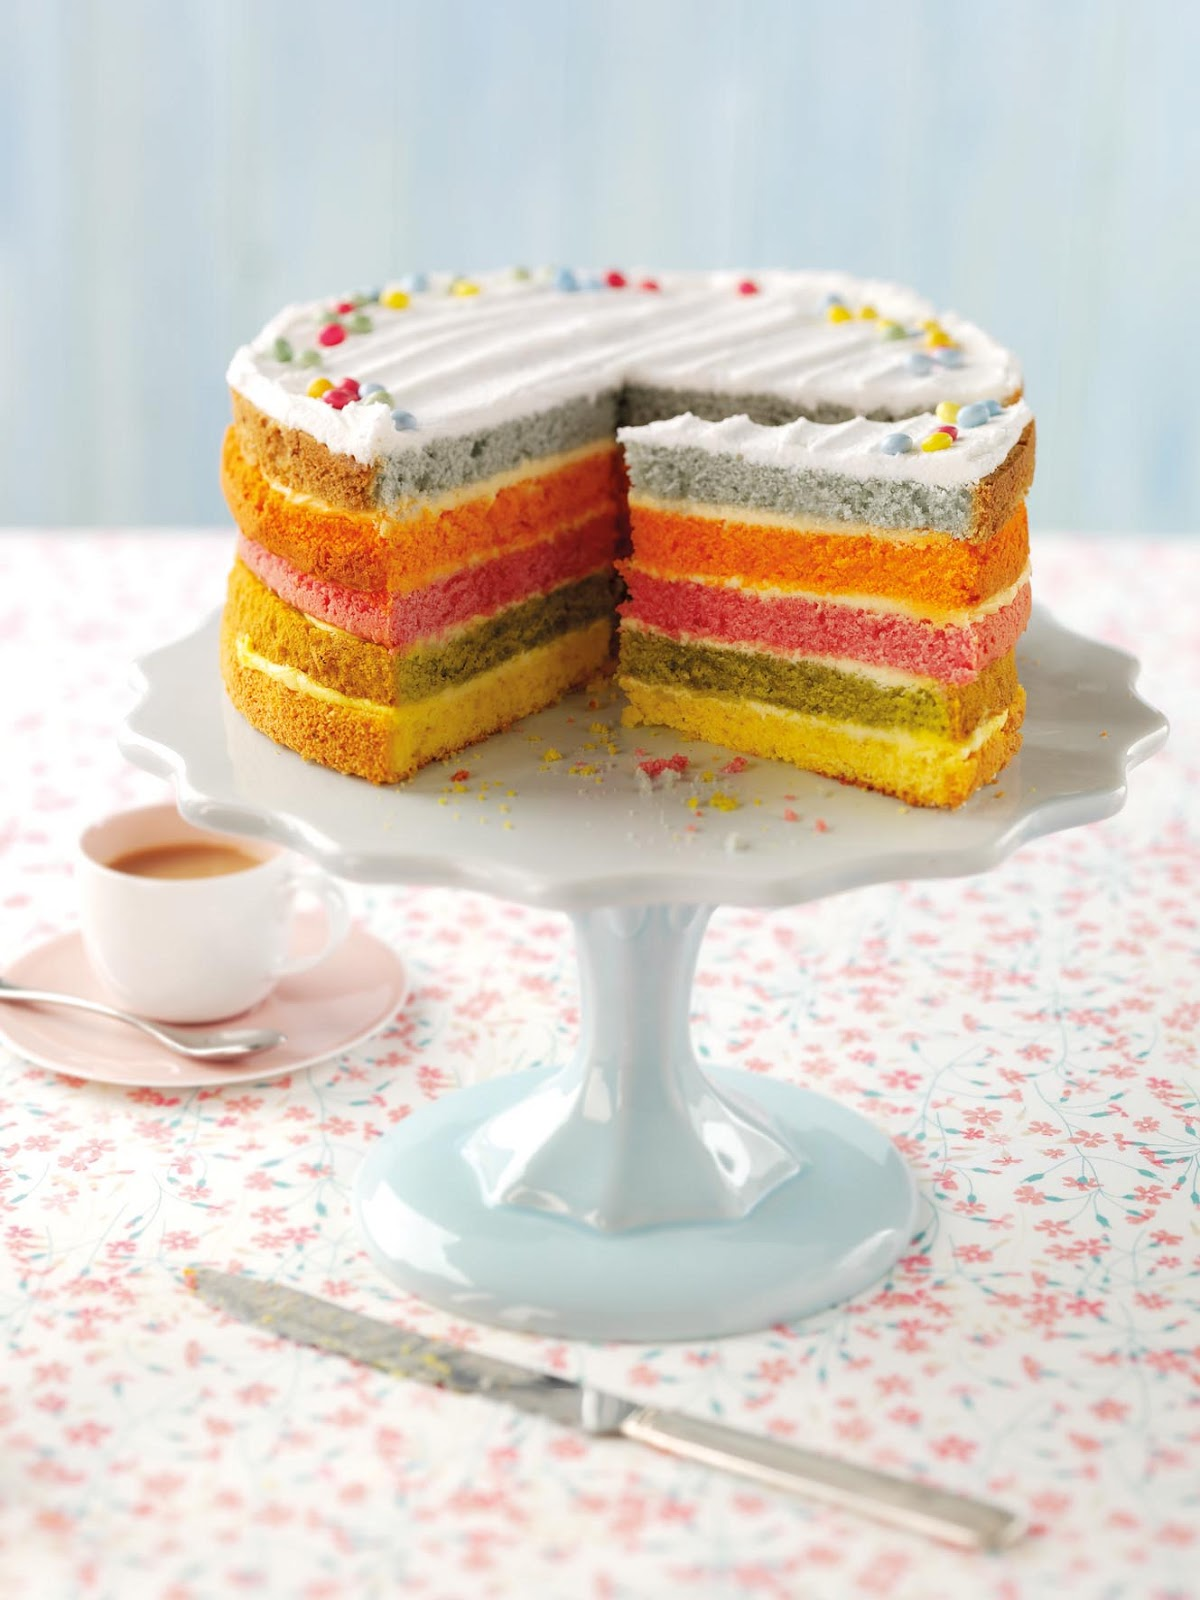 Asda Photo Cake Decorations : Grocery Gems: New Celebration Cakes at Asda - including a ...